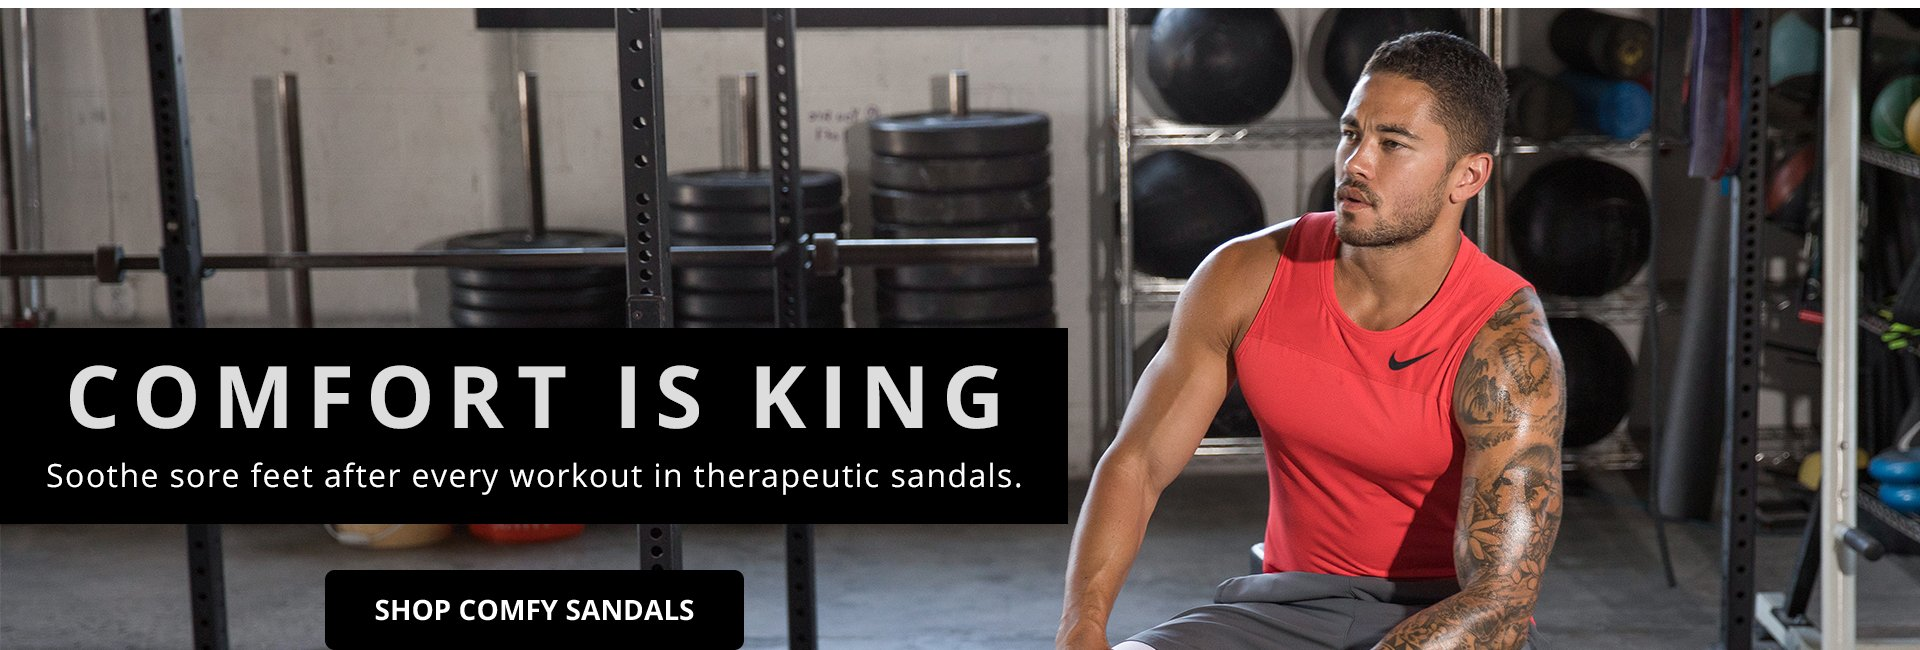 Comfort is King. Soothe sore feet after every workout in therapeutic sandals.  Shop comfy Sandals.